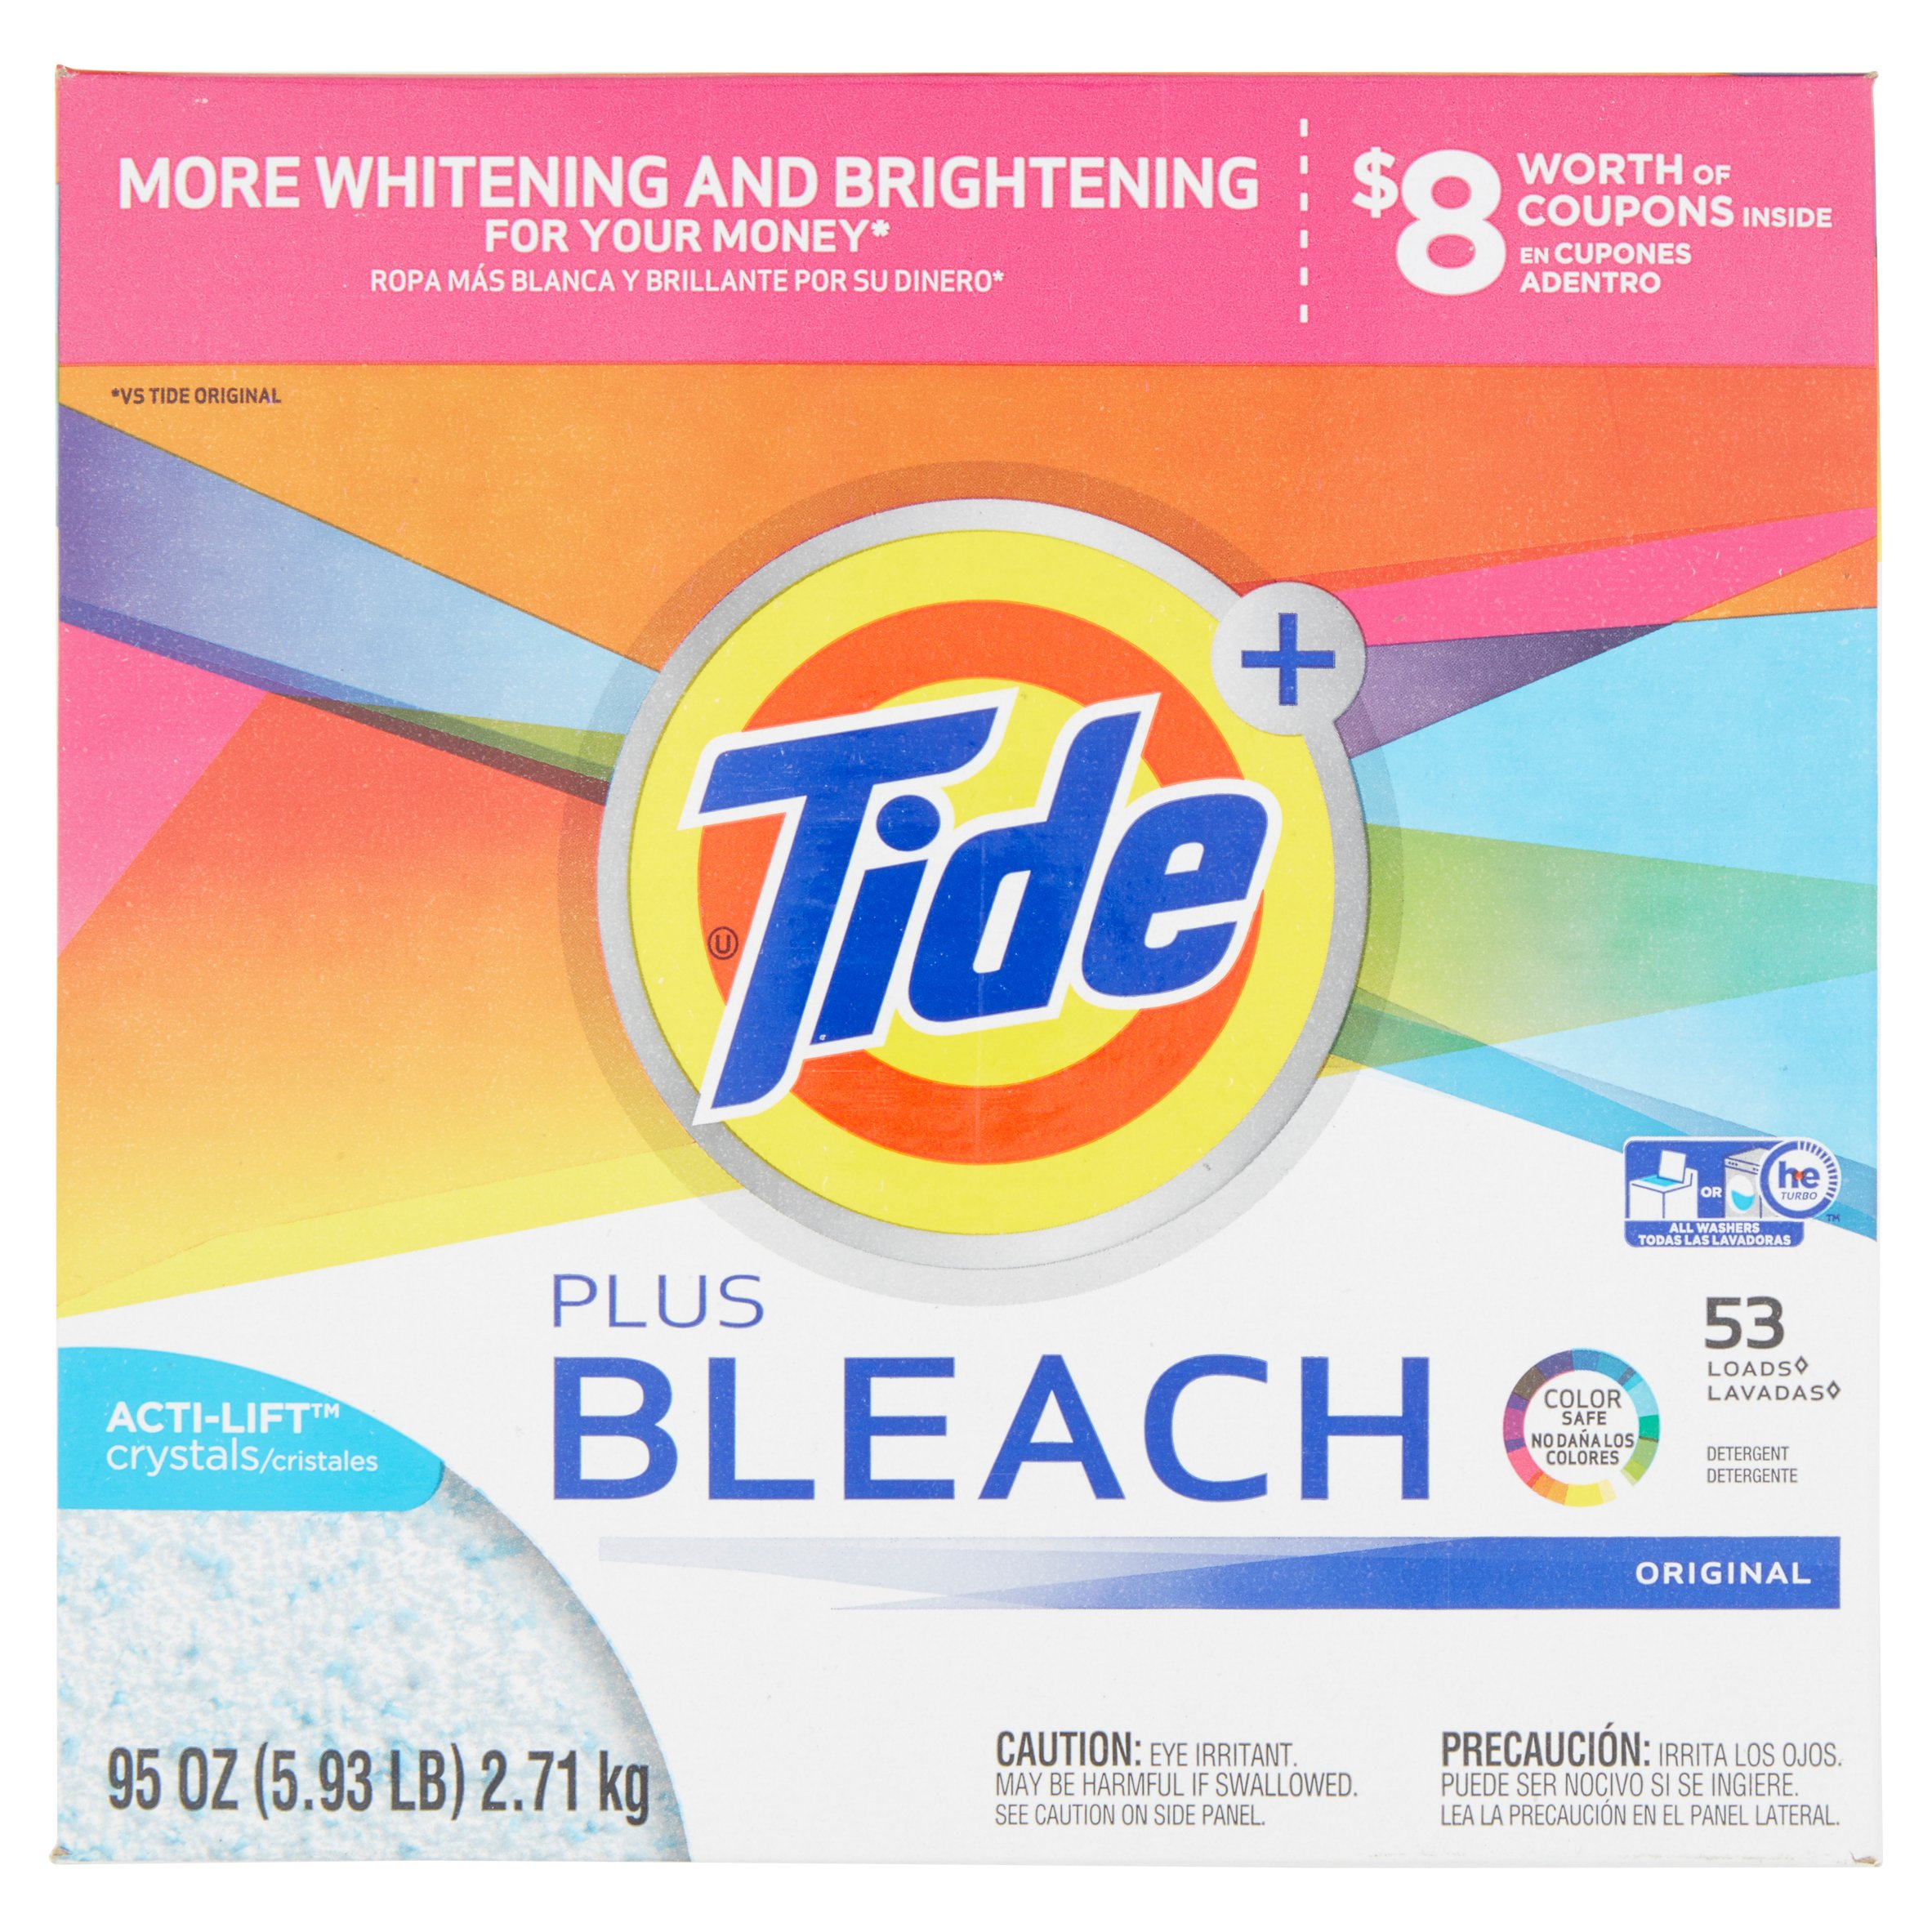 Is arm and hammer powder laundry detergent he - Tide With Bleach Alternative He Turbo Powder Laundry Detergent Original Scent 53 Loads 95